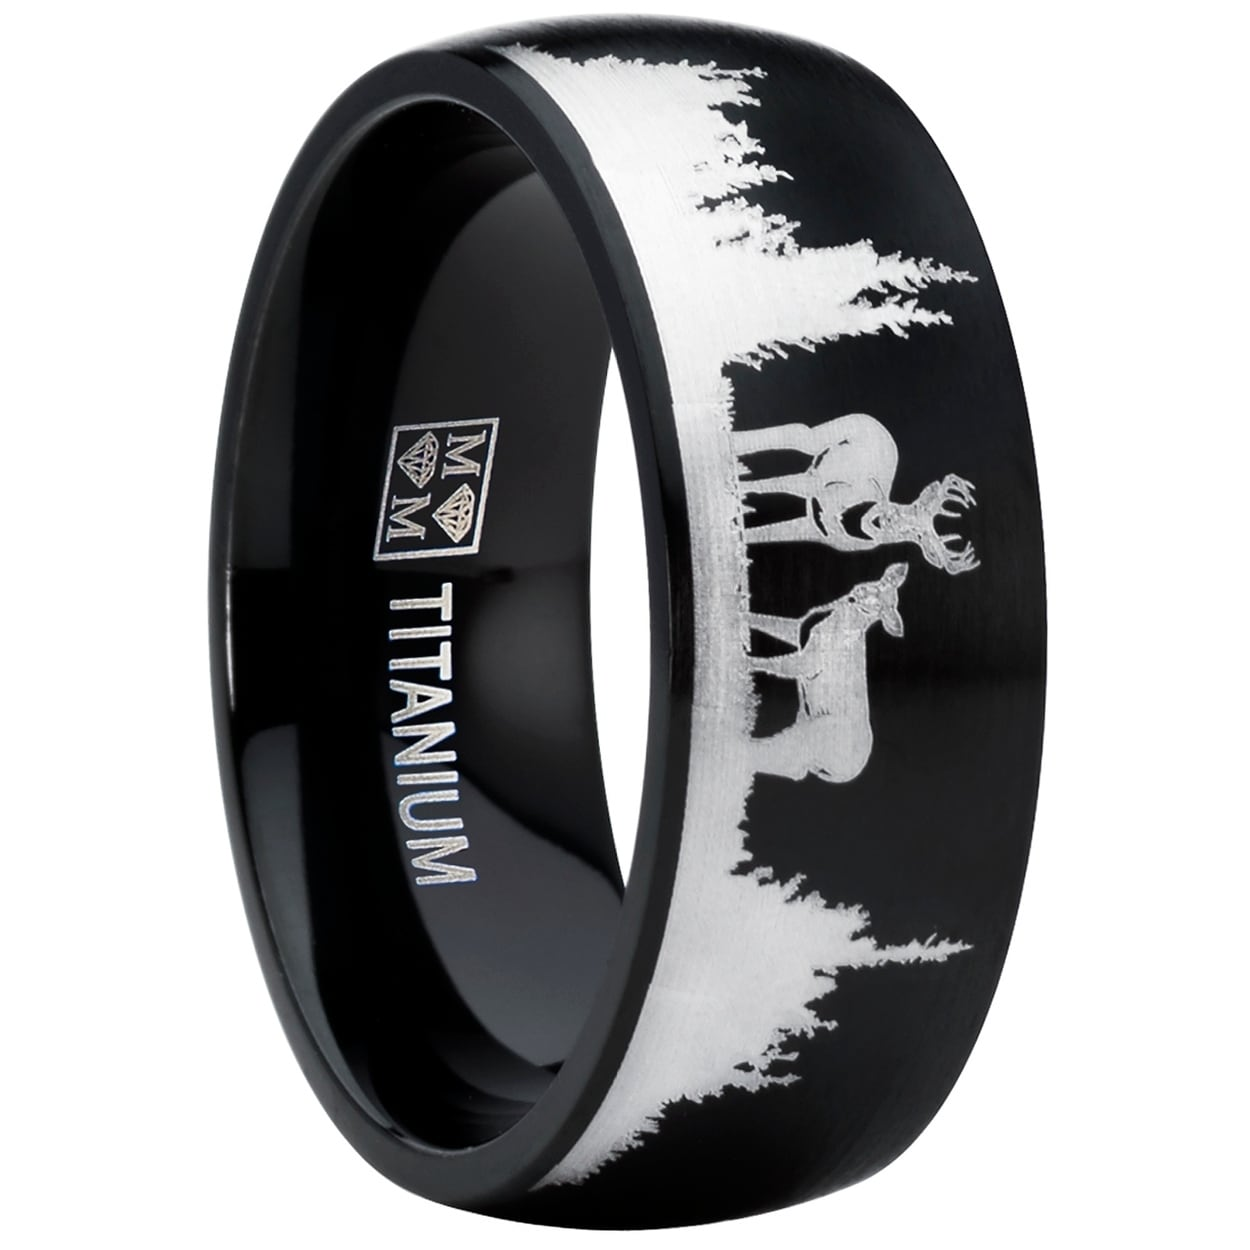 hunting ducks mens outdoor rings elegant of realtree wedding tungsten bands camo concept new